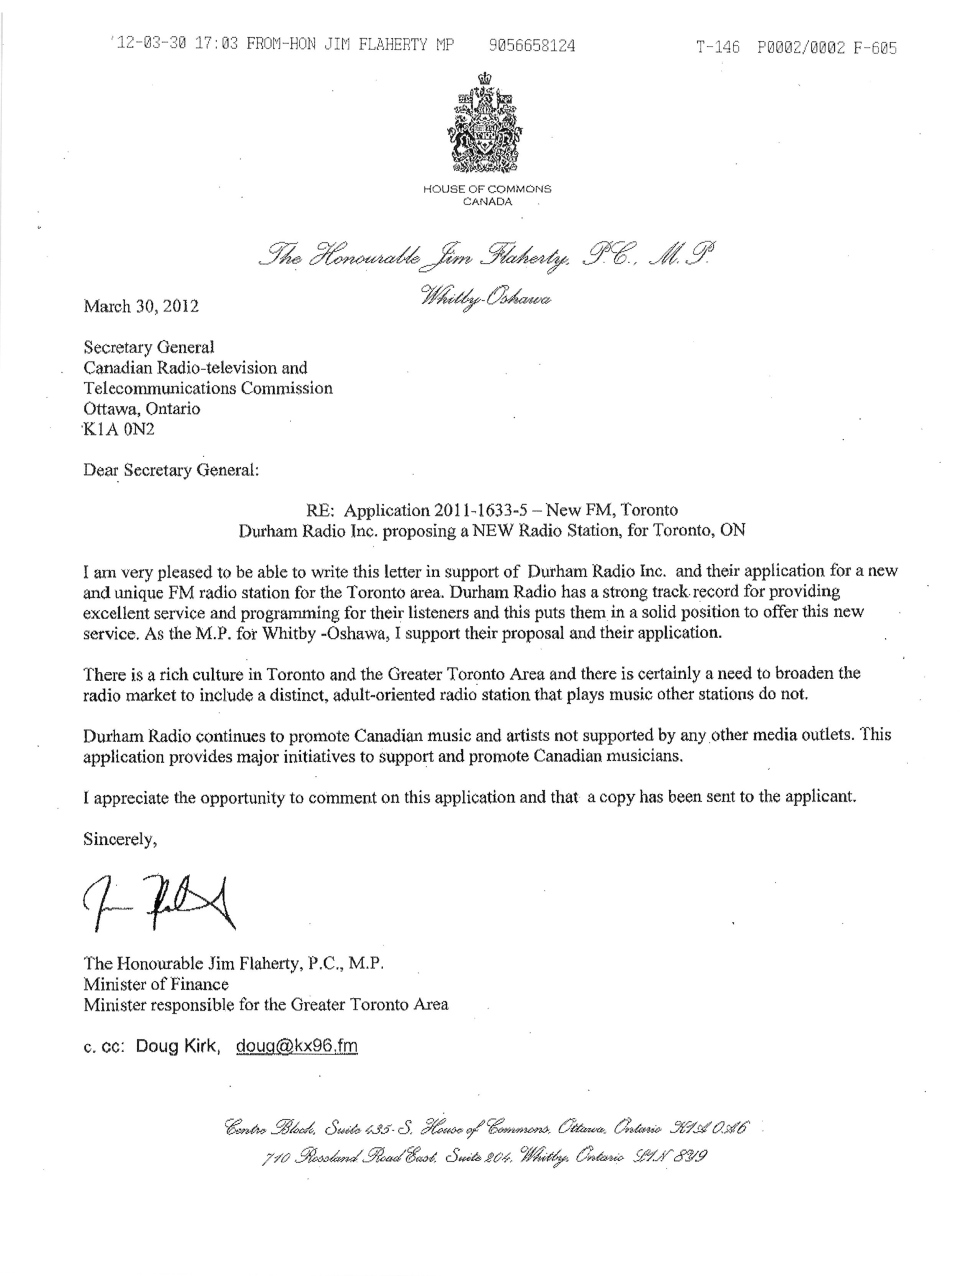 Did Flaherty break the rules in letter boosting a business to the CRTC ...